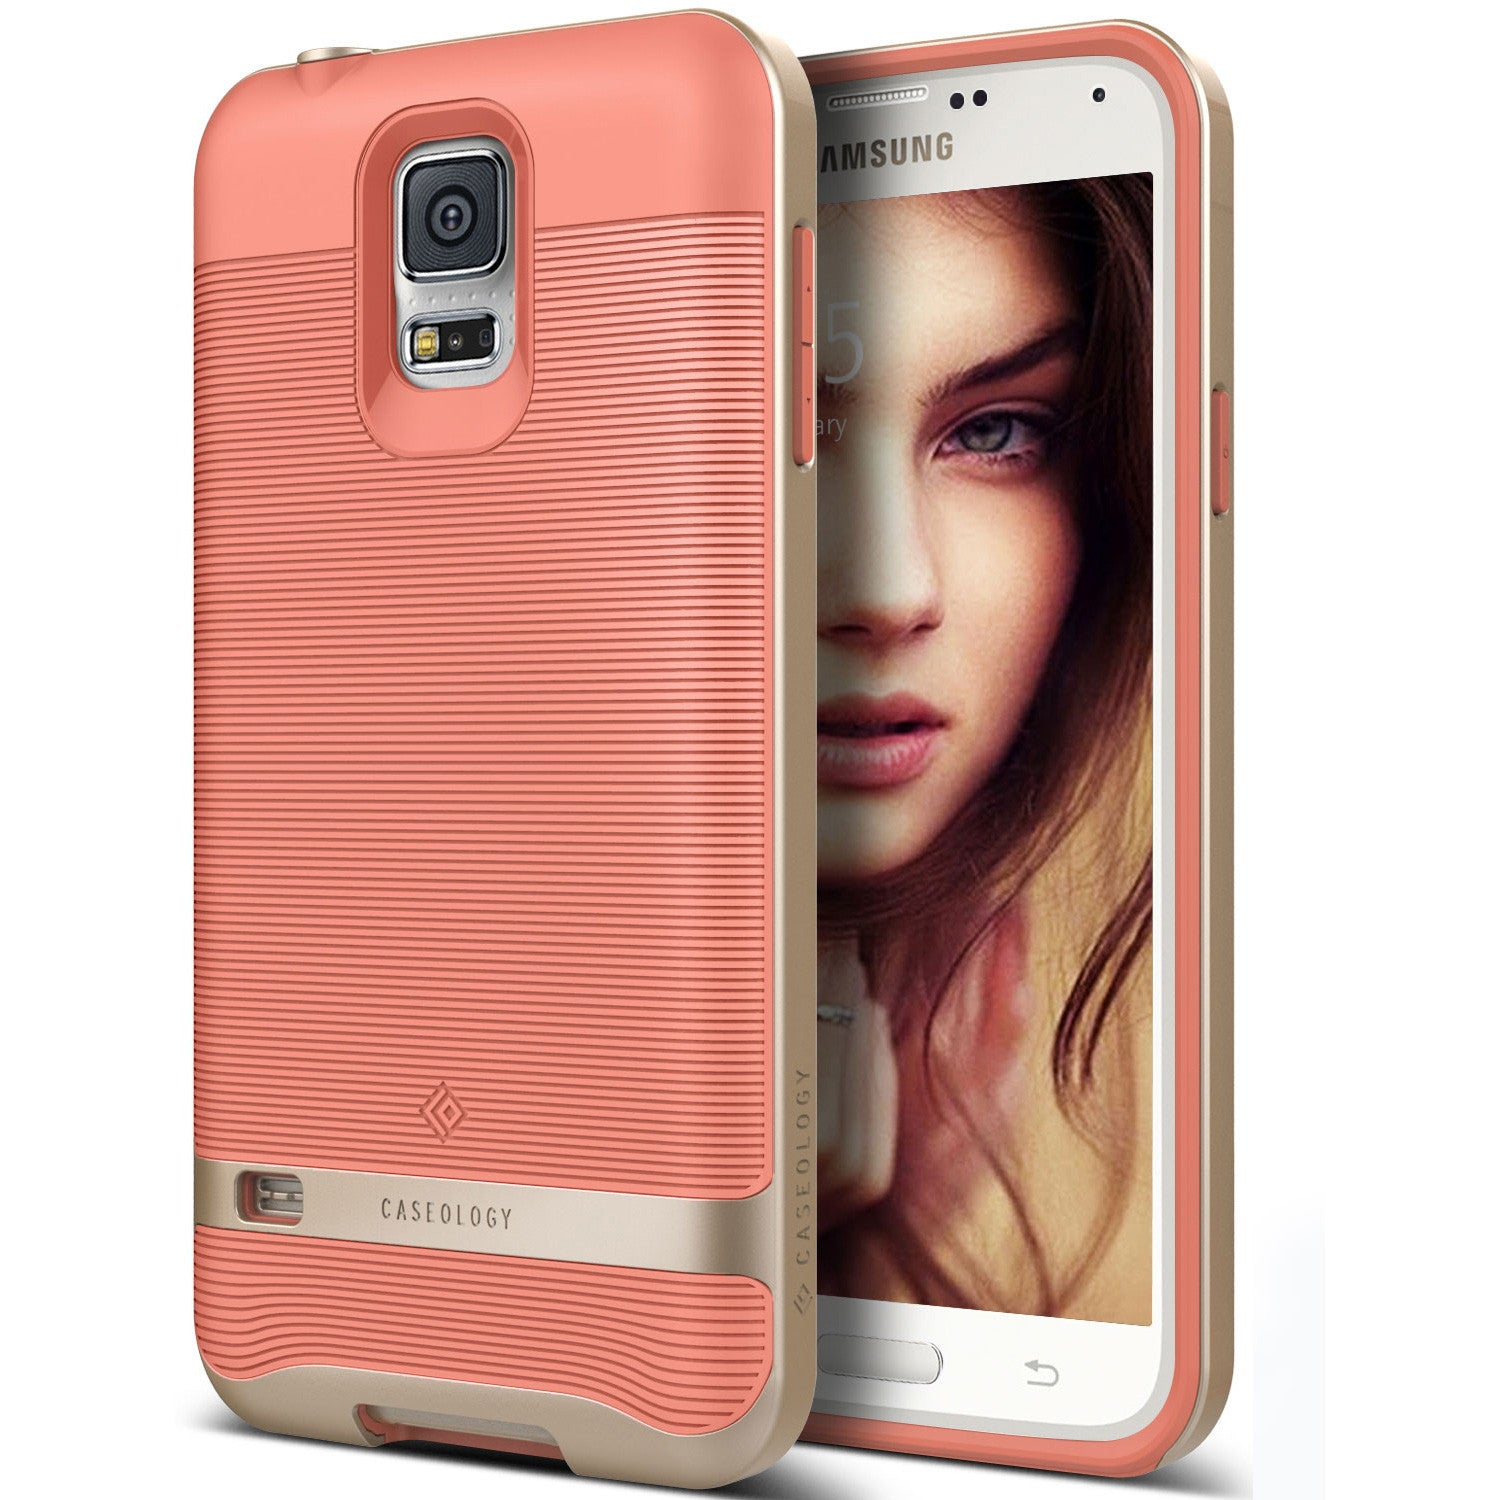 Caseology Galaxy S5 Case Wavelength Series in Coral Pink